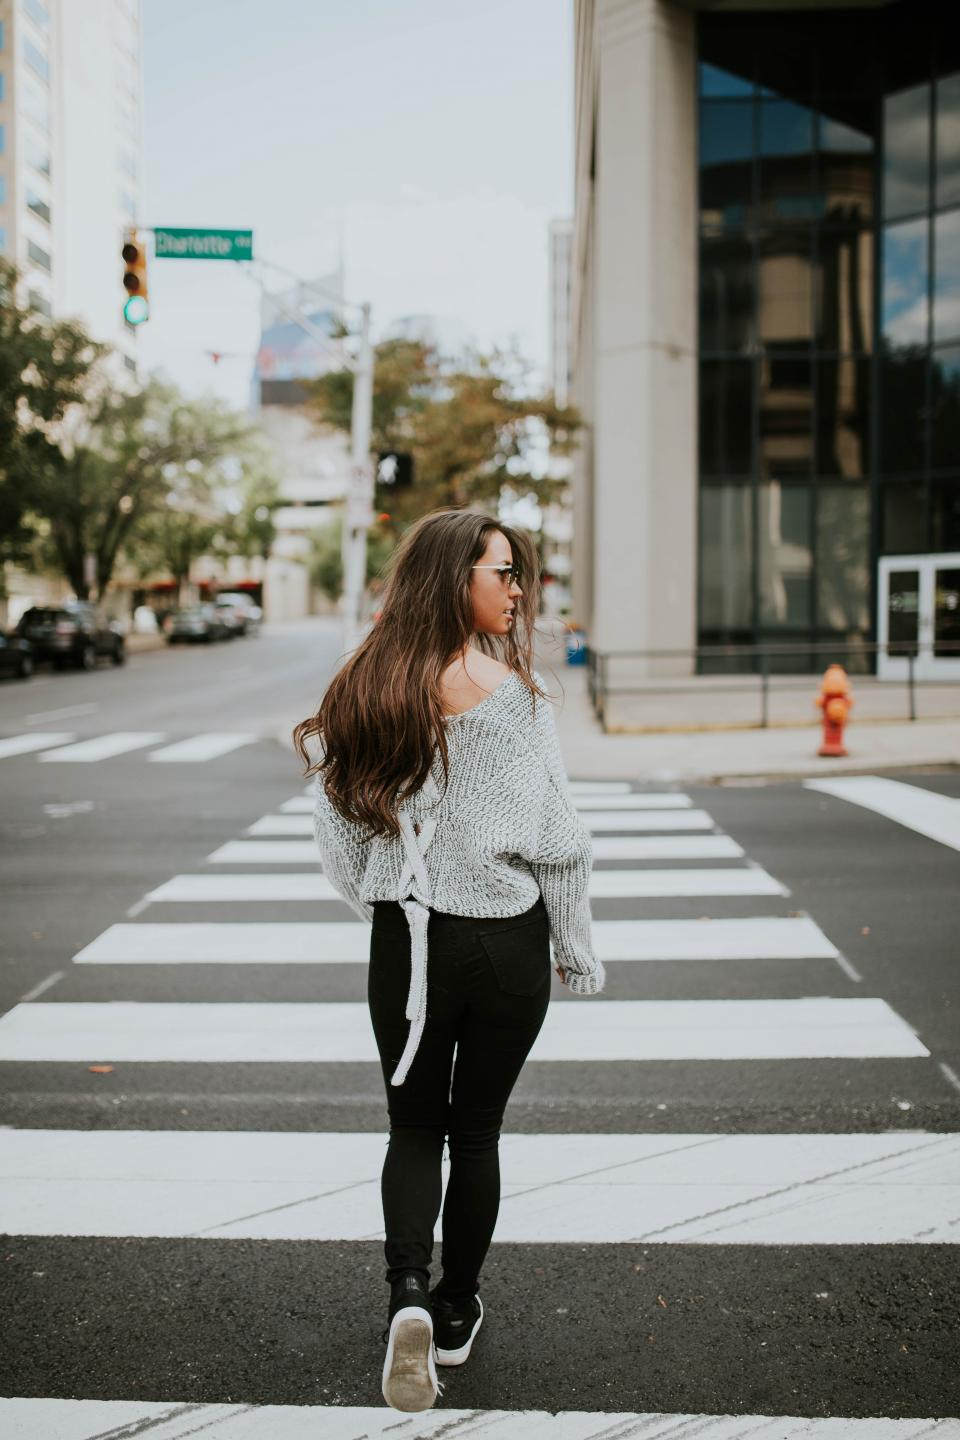 people girl woman walking pedestrian street city buildings blur sunglasses clothing fashion model travel